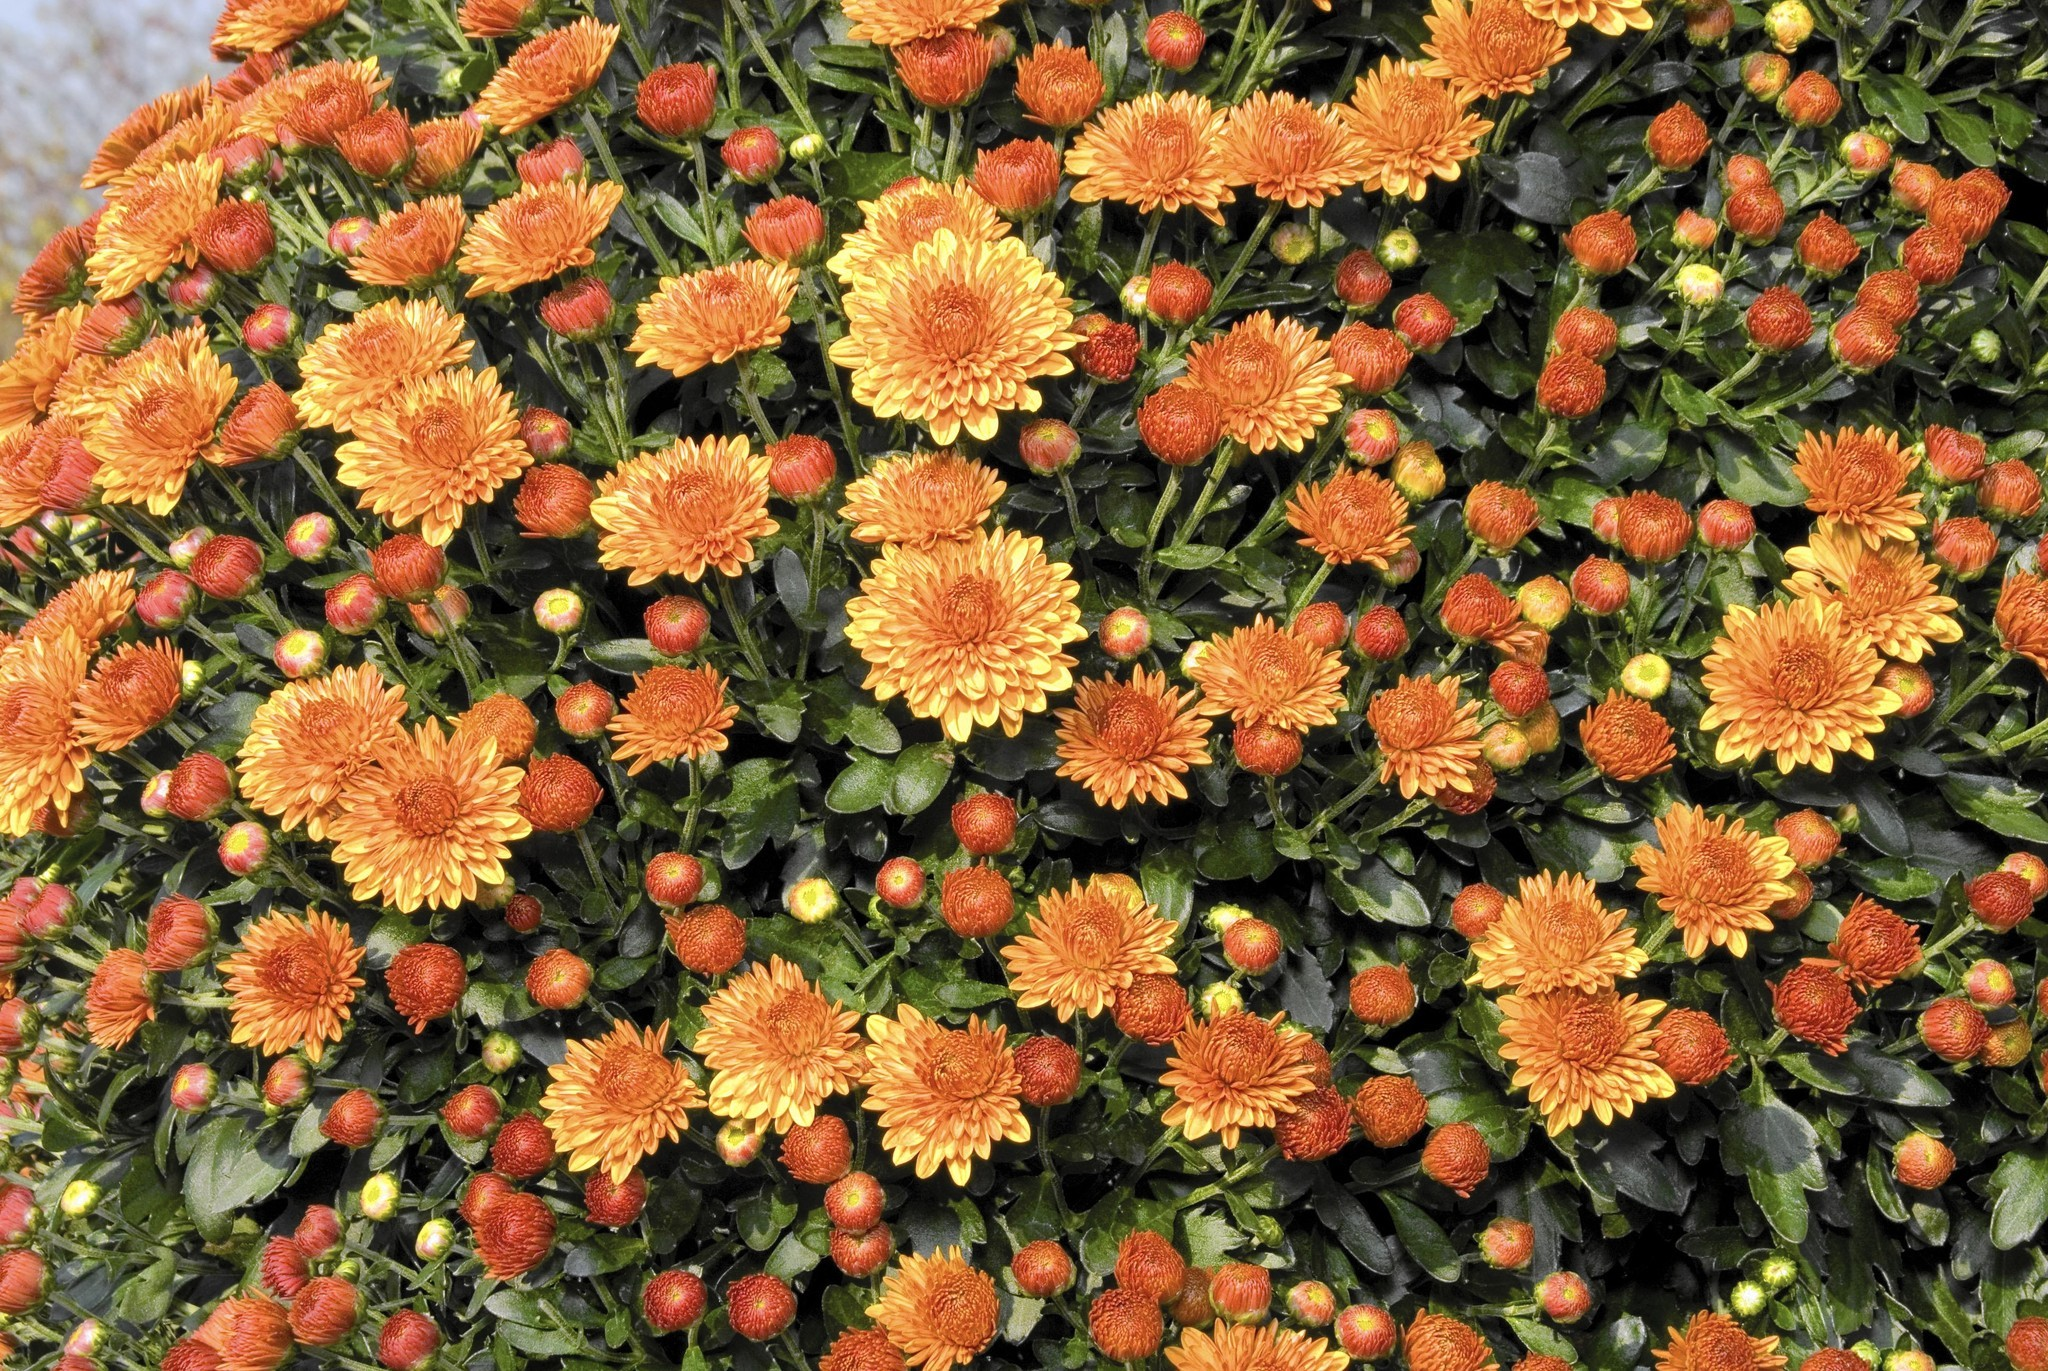 Planting garden mums getting the most bloom for your buck chicago planting garden mums getting the most bloom for your buck chicago tribune mightylinksfo